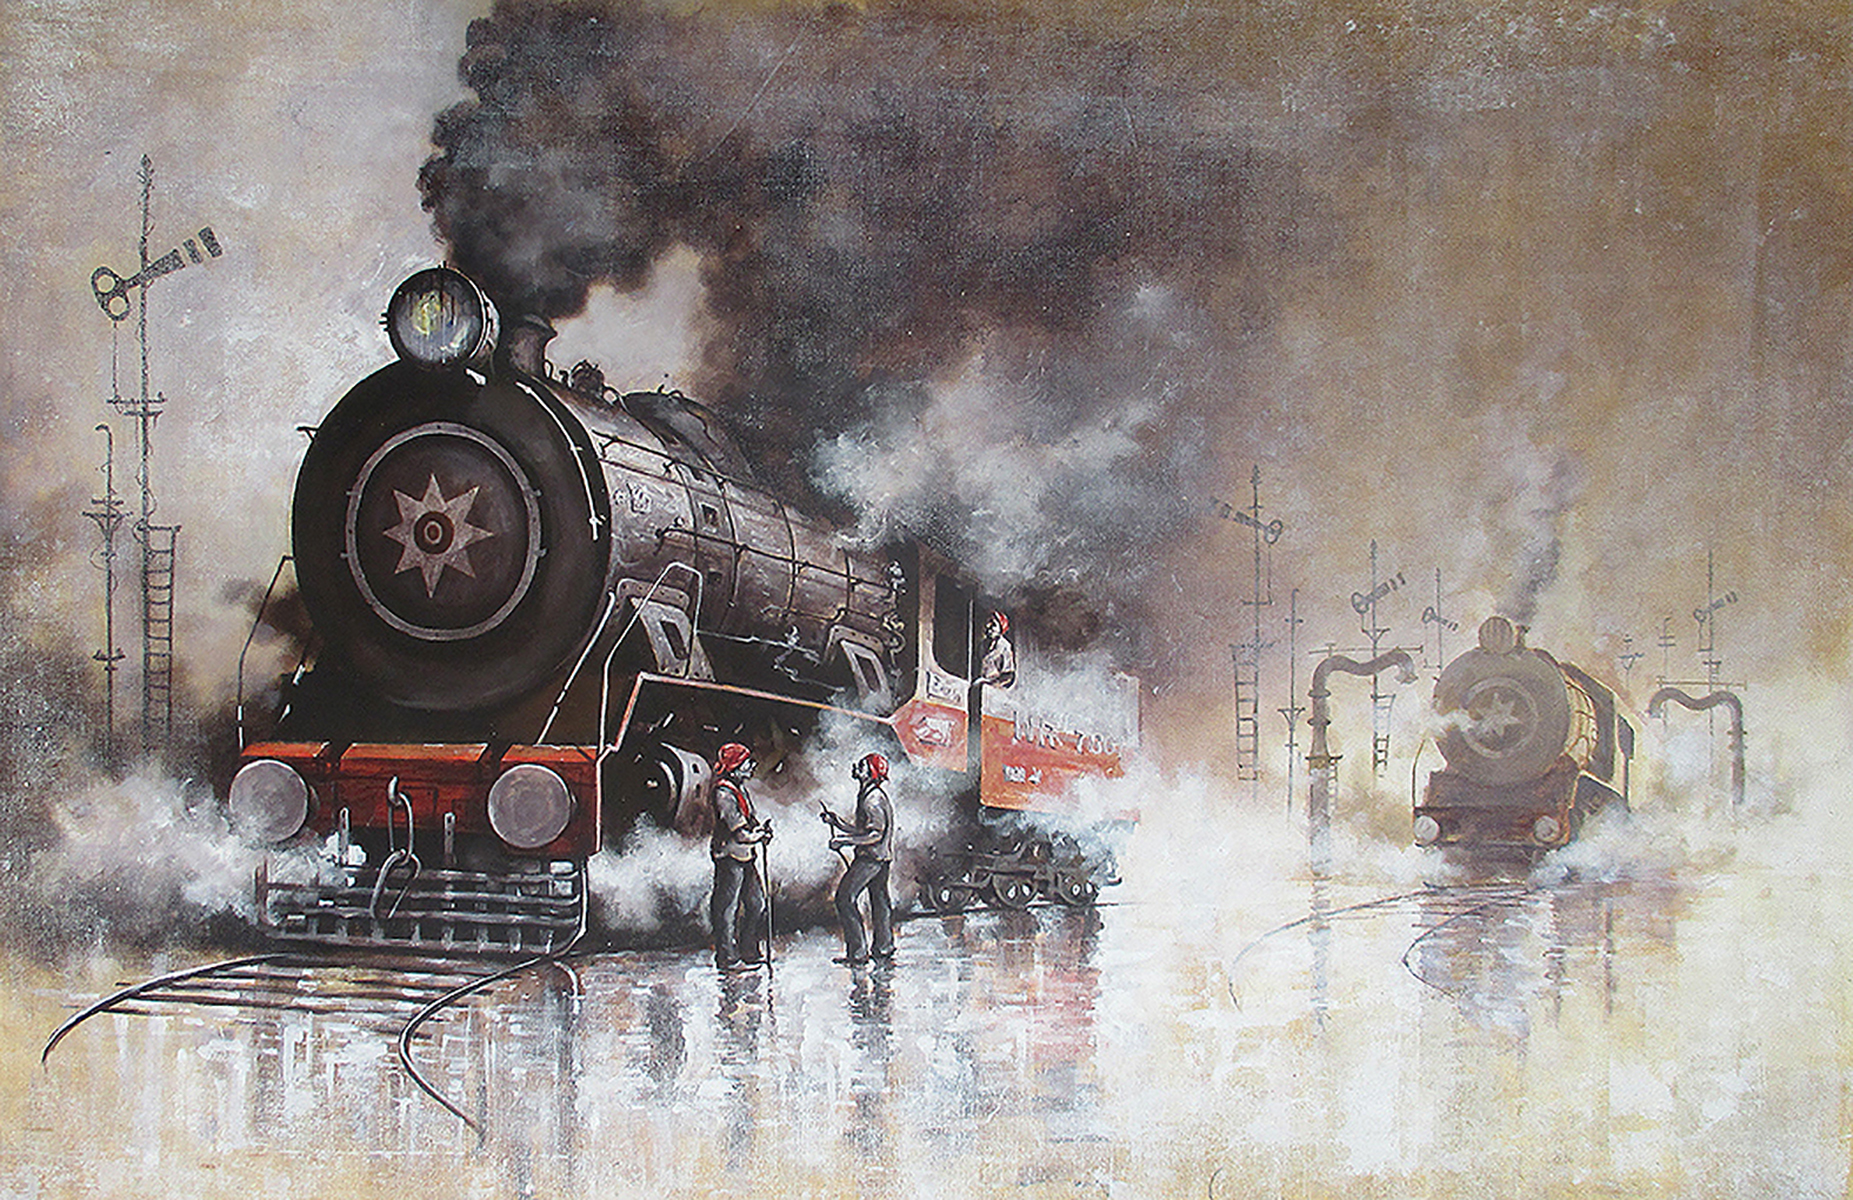 Nostalgia of Indian steam locomotives 31 10157